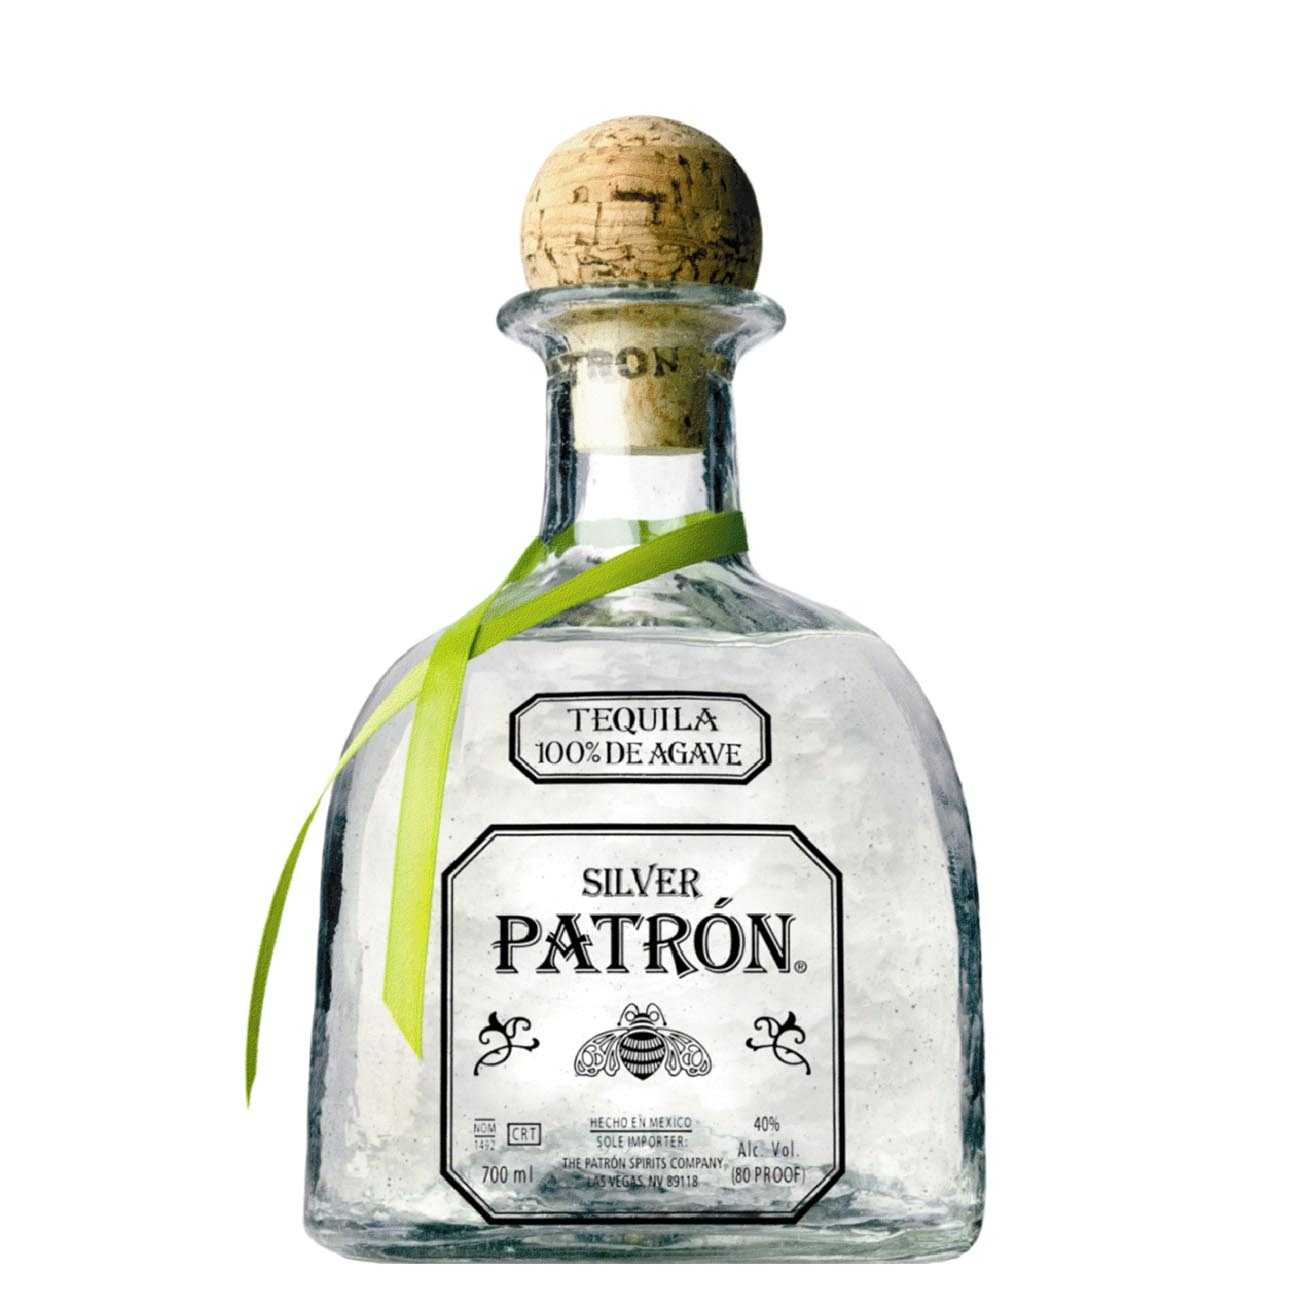 Tequila, SILVER 700 ML, Patron